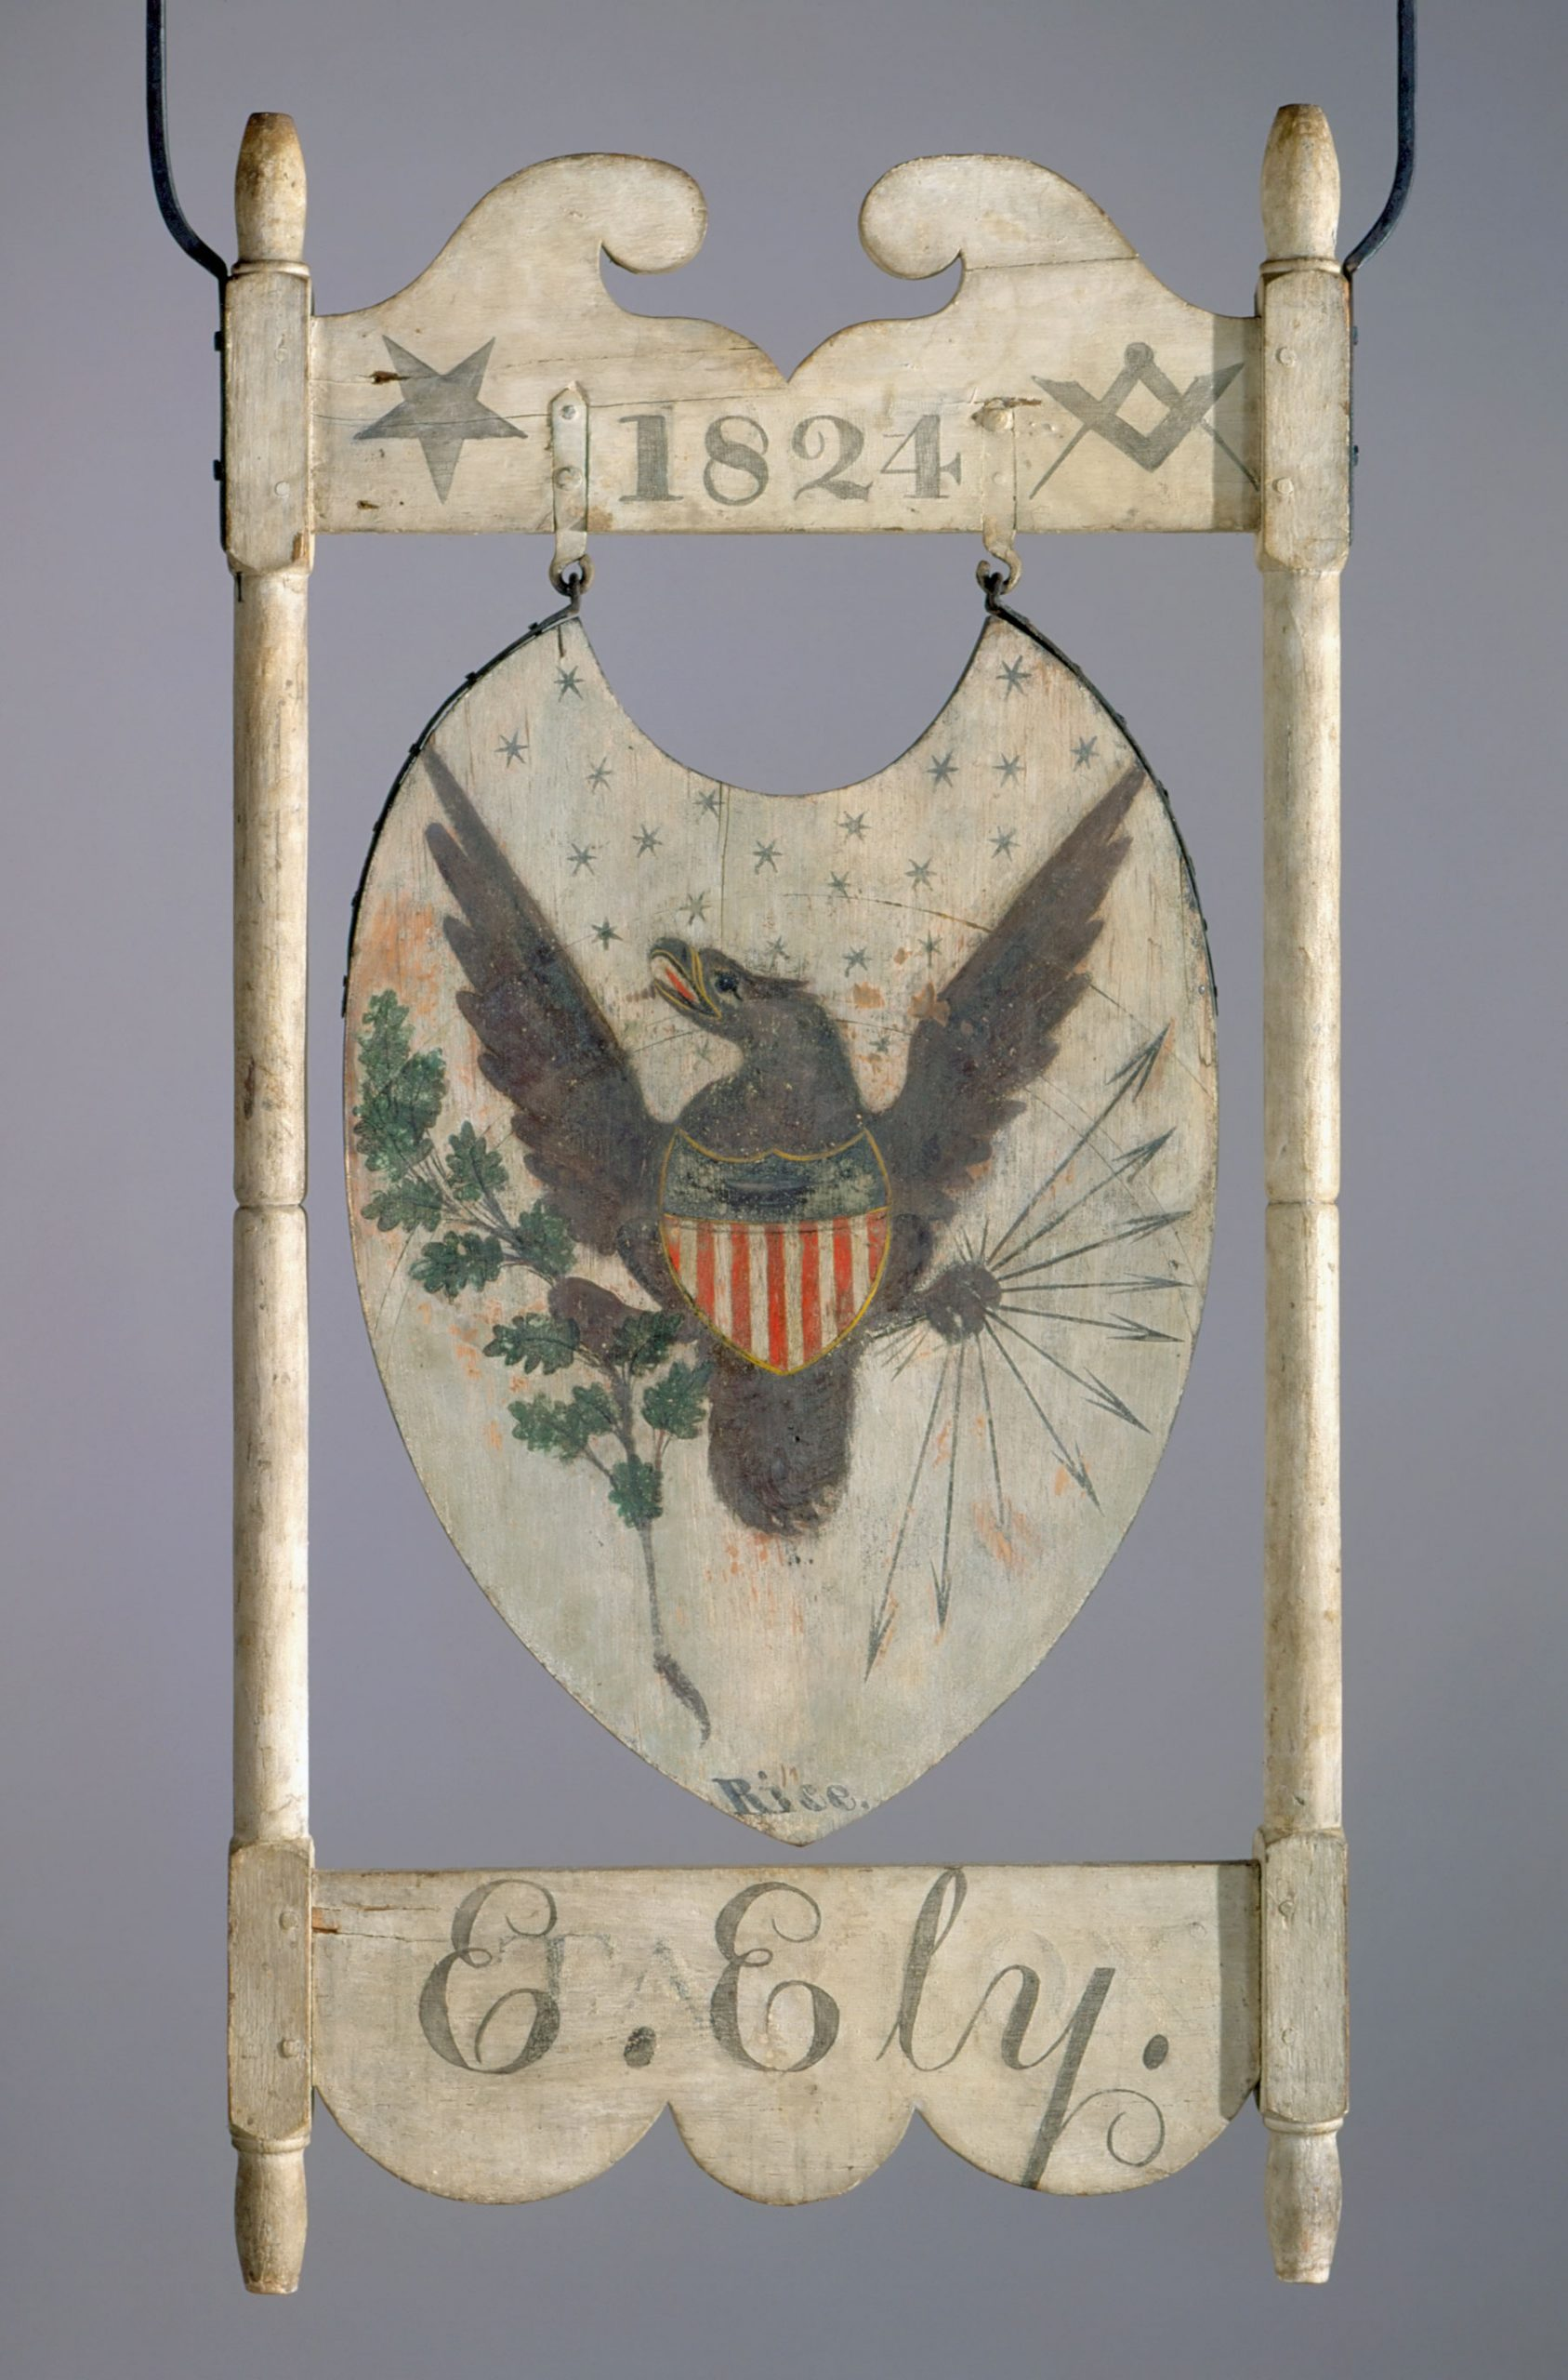 Sign for the <em>Tarbox Inn</em>, dated 1807 and 1824, Scantic, Connecticut. Side 2 overpainted possibly ca. 1831, Enfield, Connecticut. Paint on pine board and frame, sand, smalt, gold leaf, iron hardware, 50 ½ x 25 in. Innholders: Thomas Tarbox; Ephraim Ely; Isaac G. Allen. Signed by William Rice. Connecticut Historical Society, Hartford, Connecticut. Collection of Morgan B. Brainard, Gift of Mrs. Morgan B. Brainard, 1961.63.21.